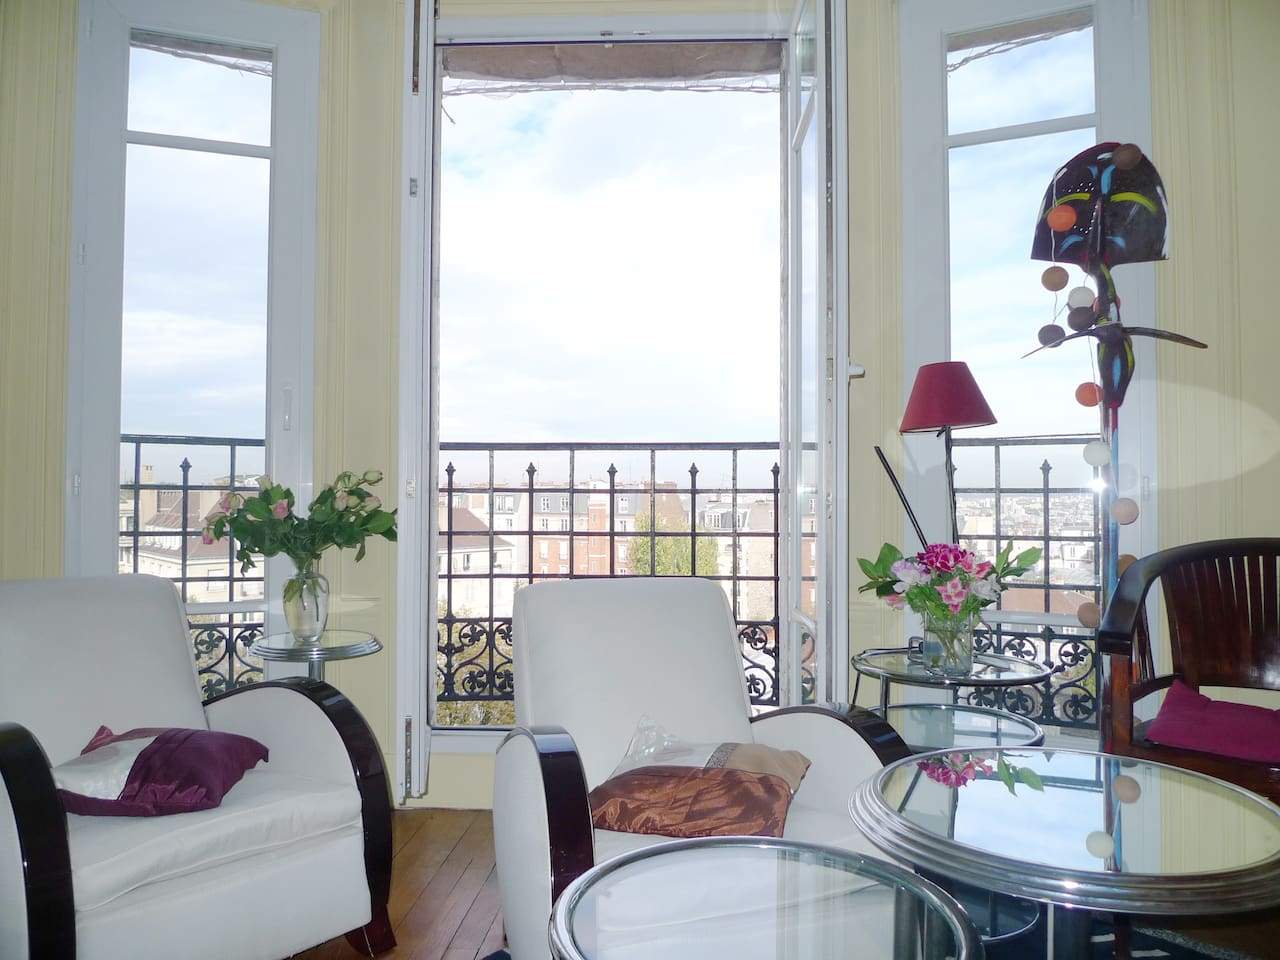 Apt. Celine - The living room offers a panoramic view over Paris and design armchairs